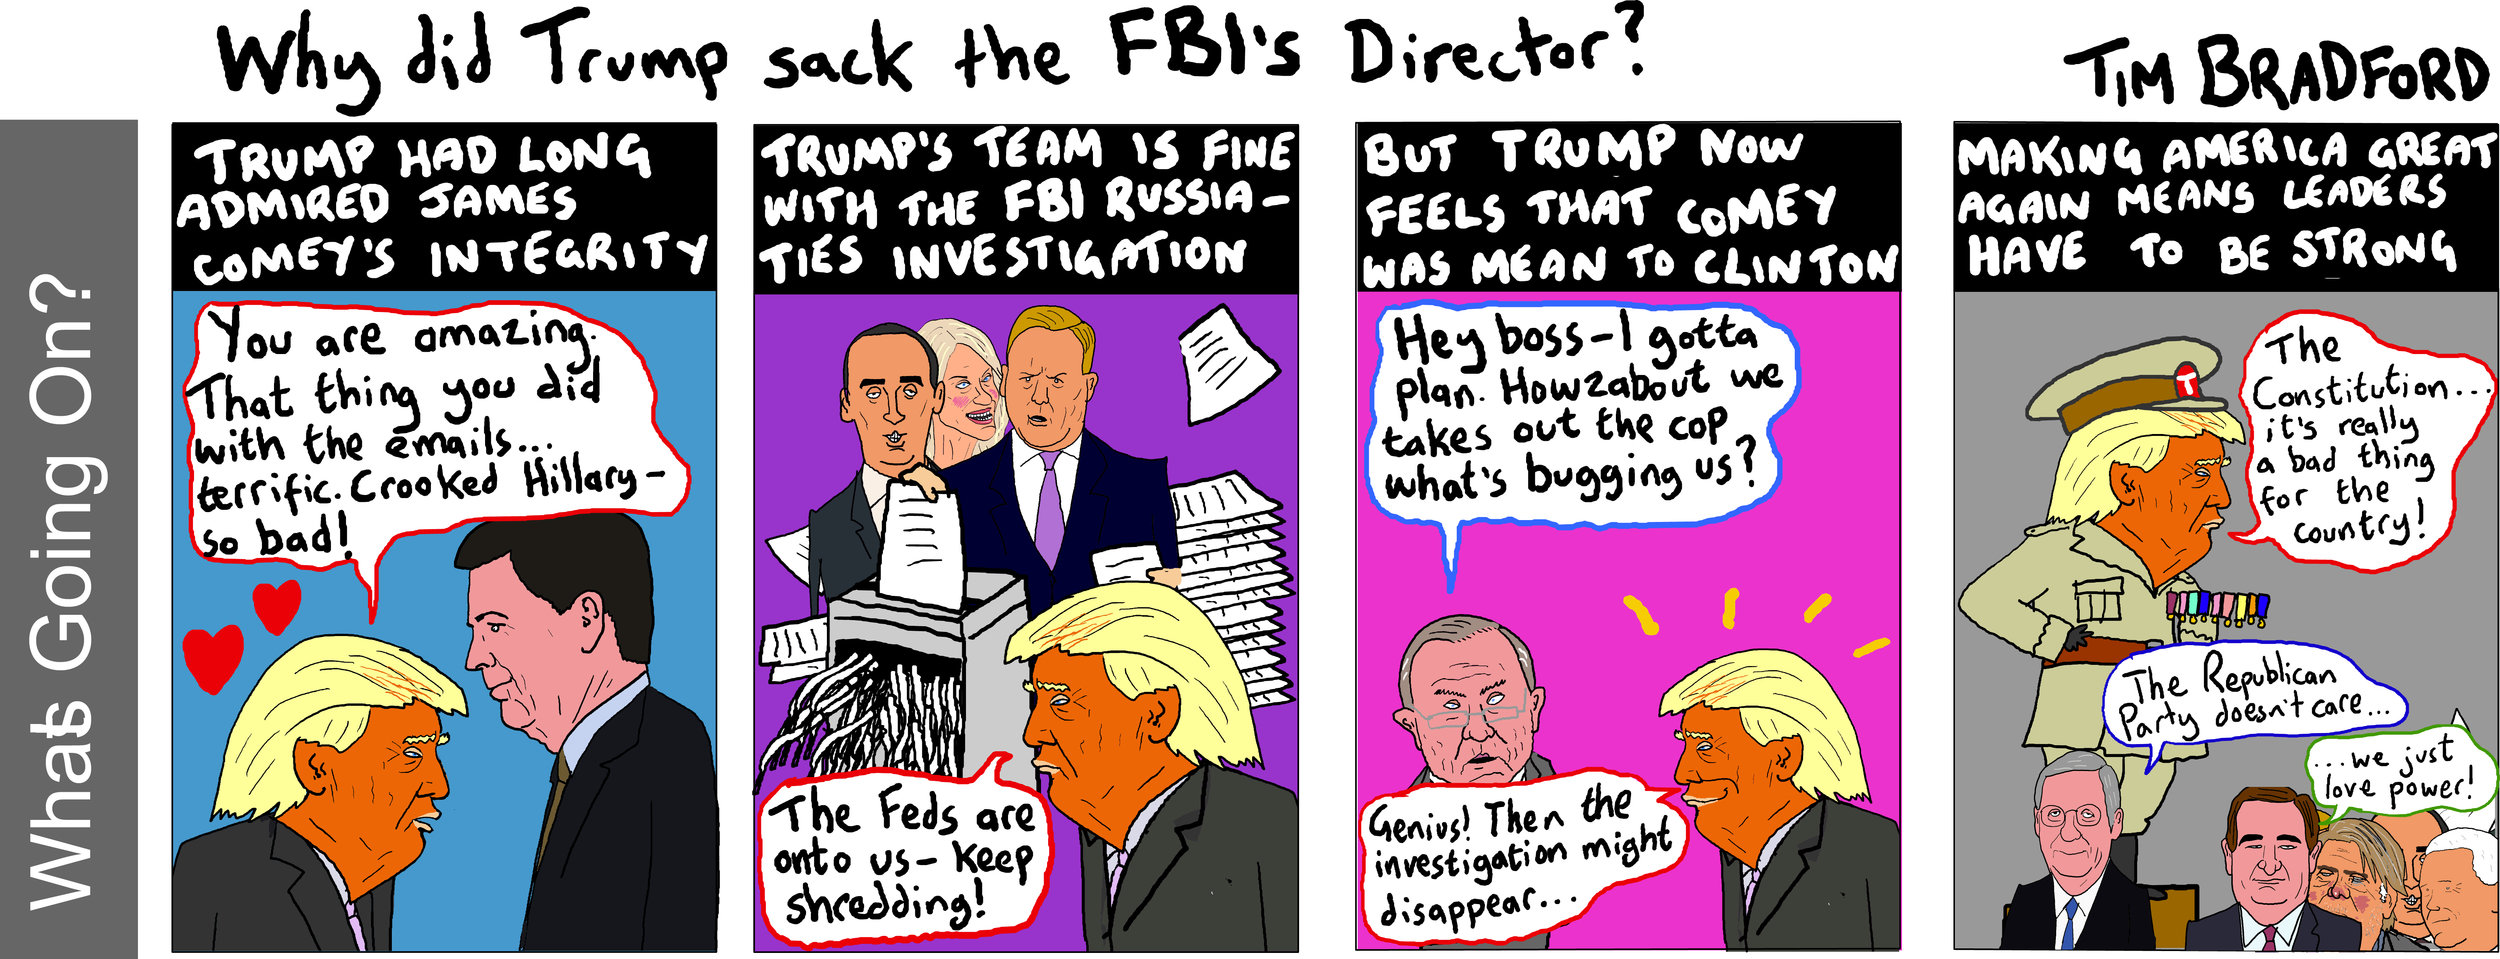 Copy of Why did Trump sack the FBI Director? - 12/05/17